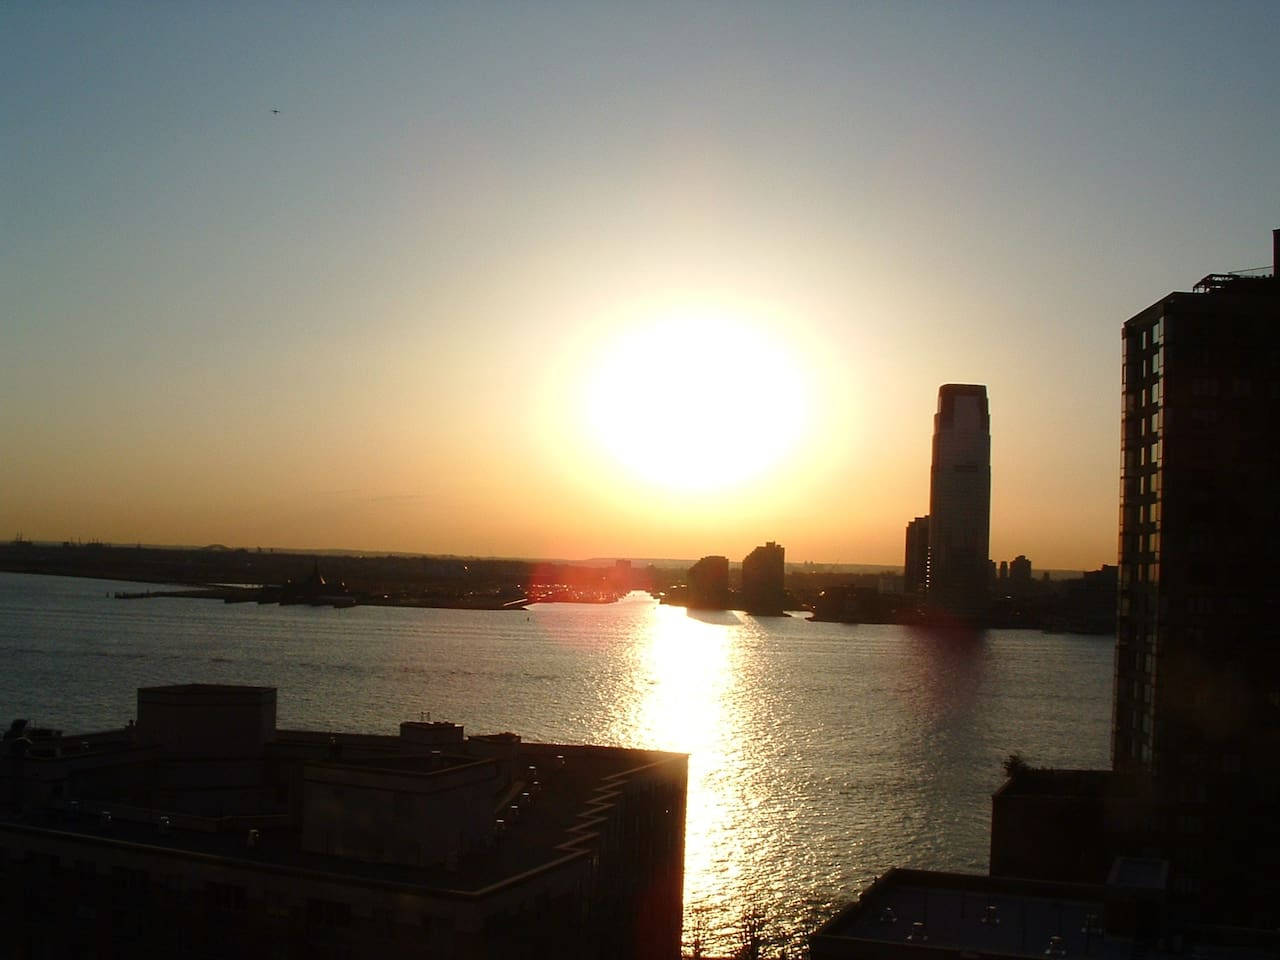 Sunset over Hudson River from terrace (with Jersey City and Liberty State Park in background)